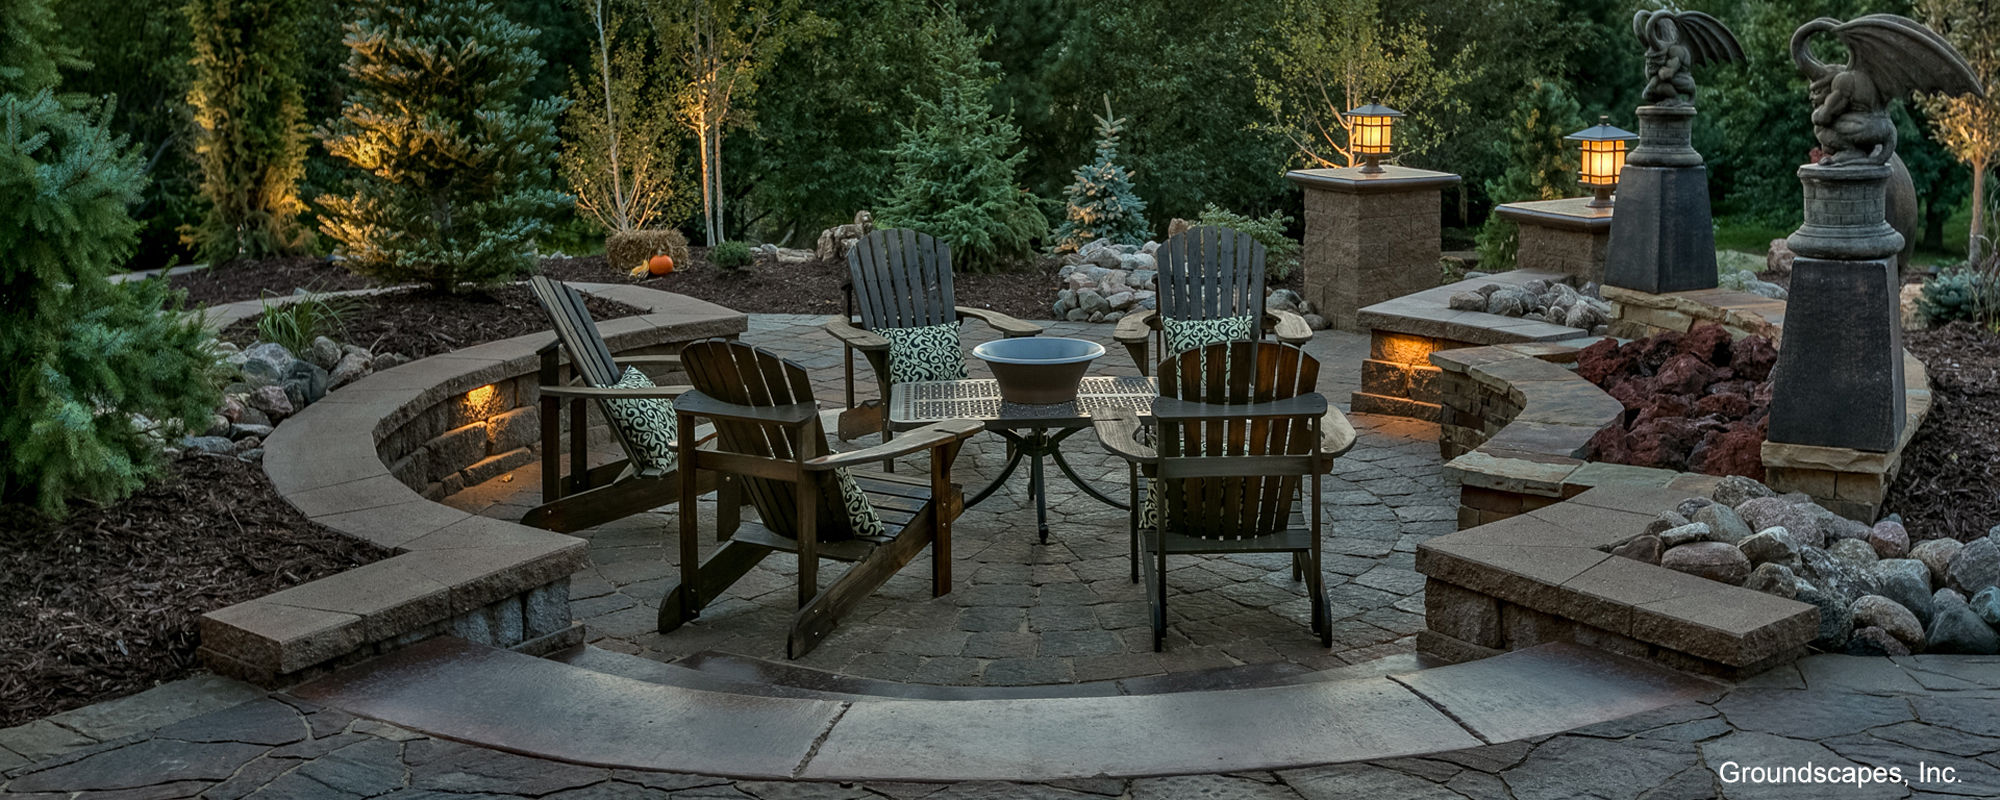 2017 omaha home show april 7 9 centurylink center for Outdoor furniture omaha